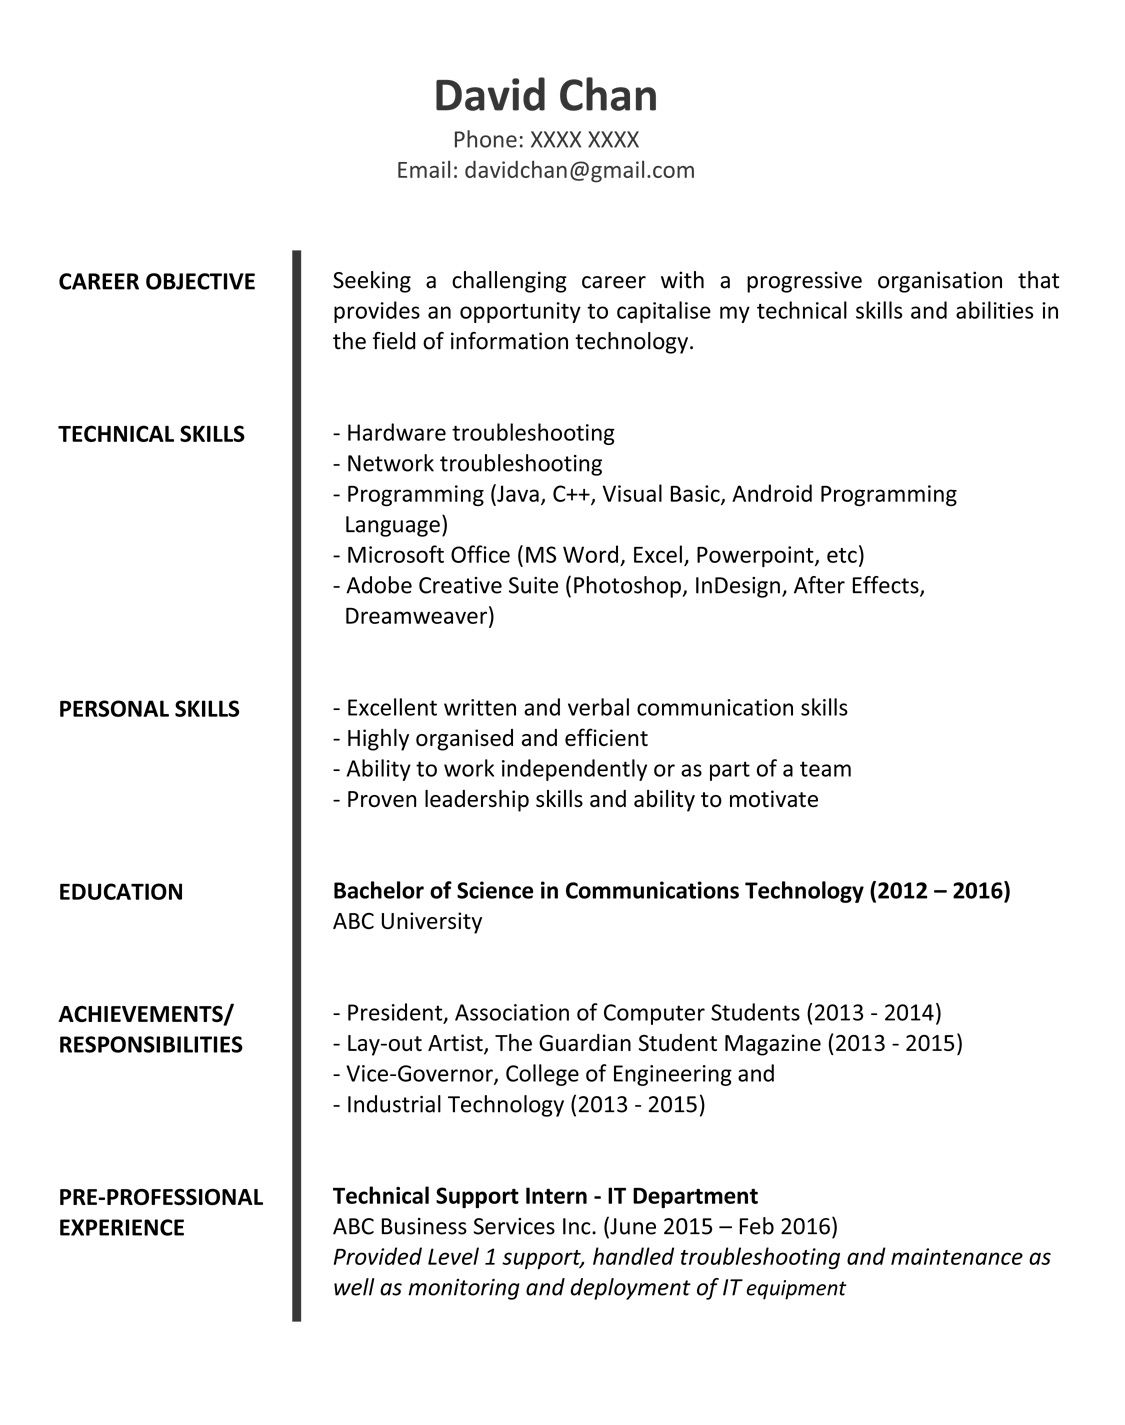 Sample resume for fresh graduates (IT professional) Job